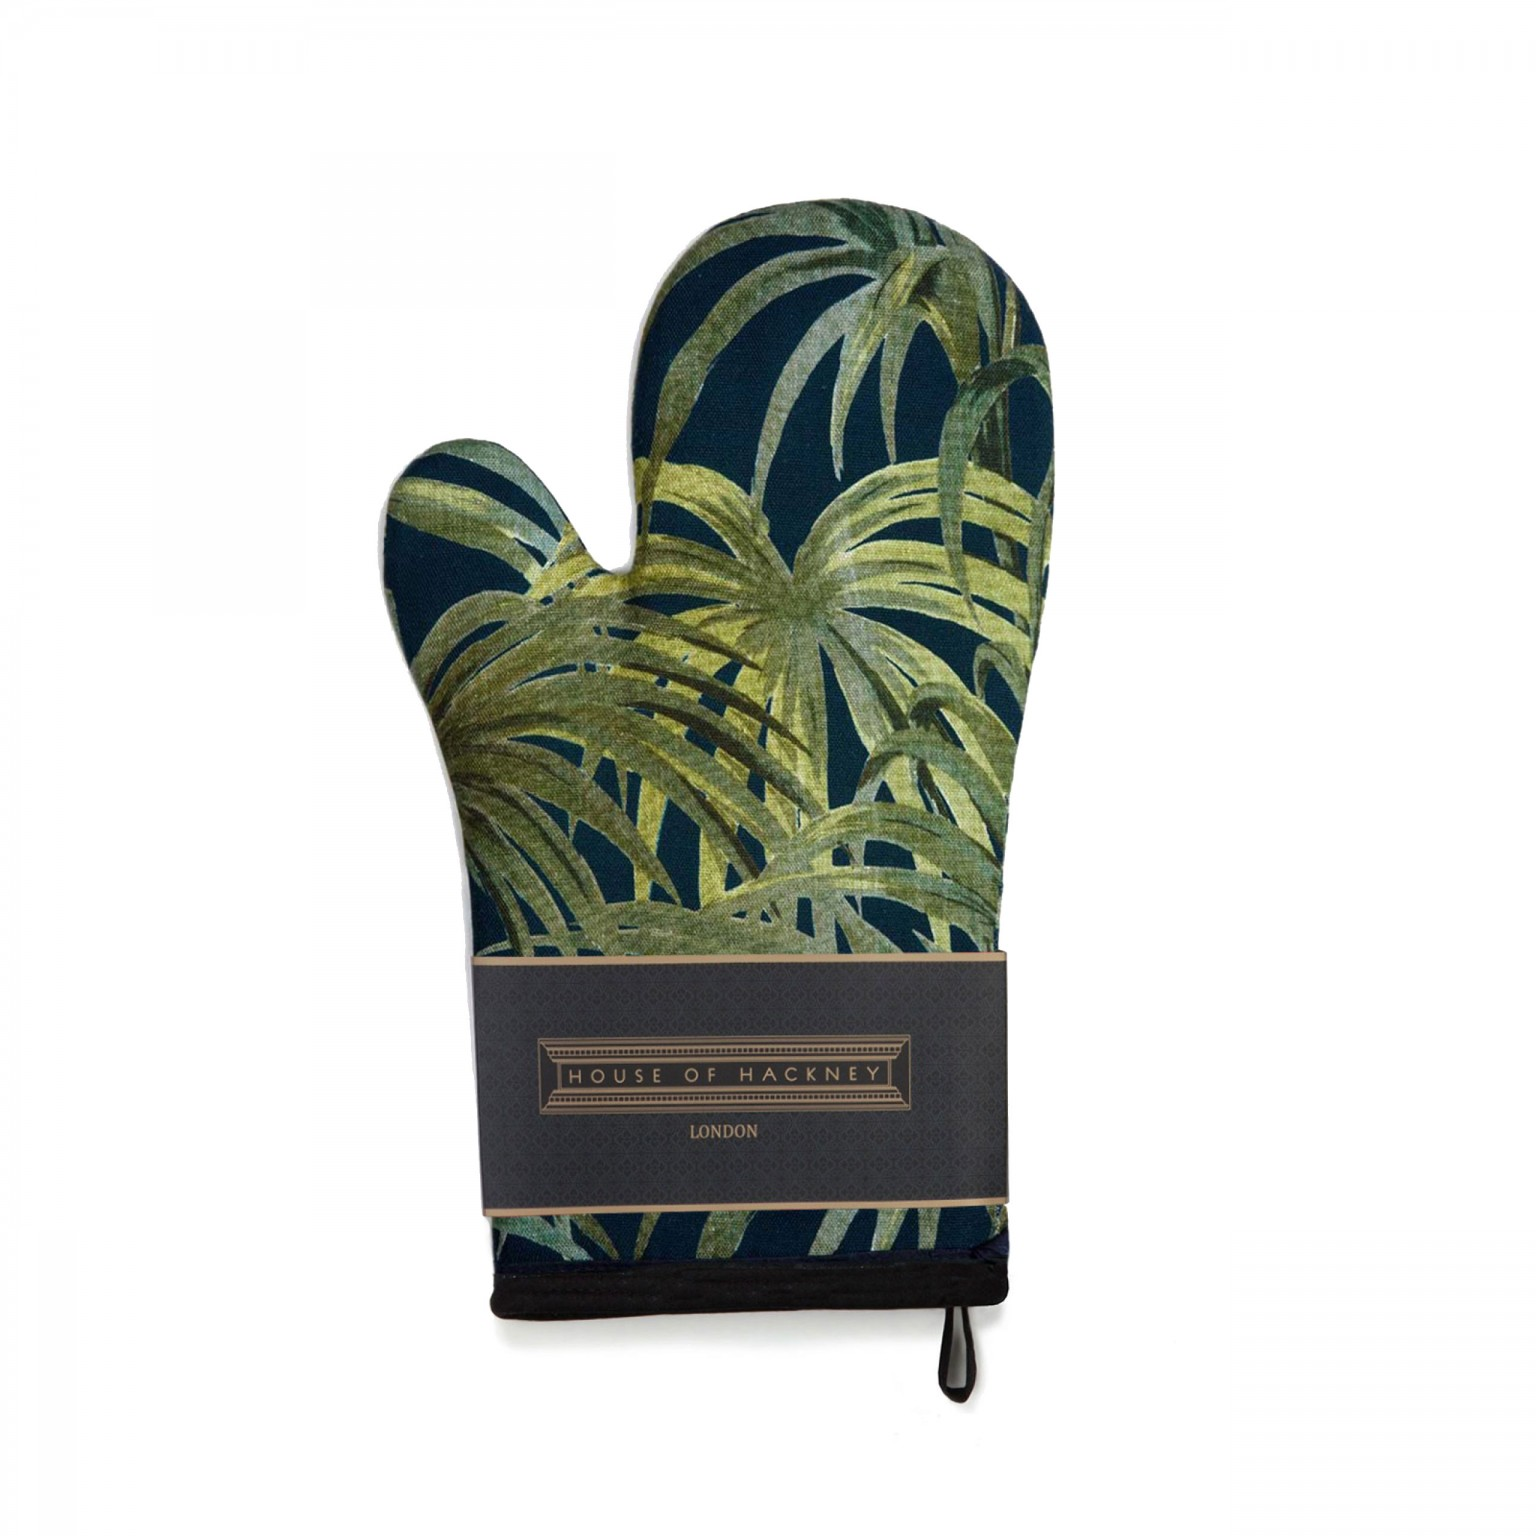 House of hackney oven glove £25